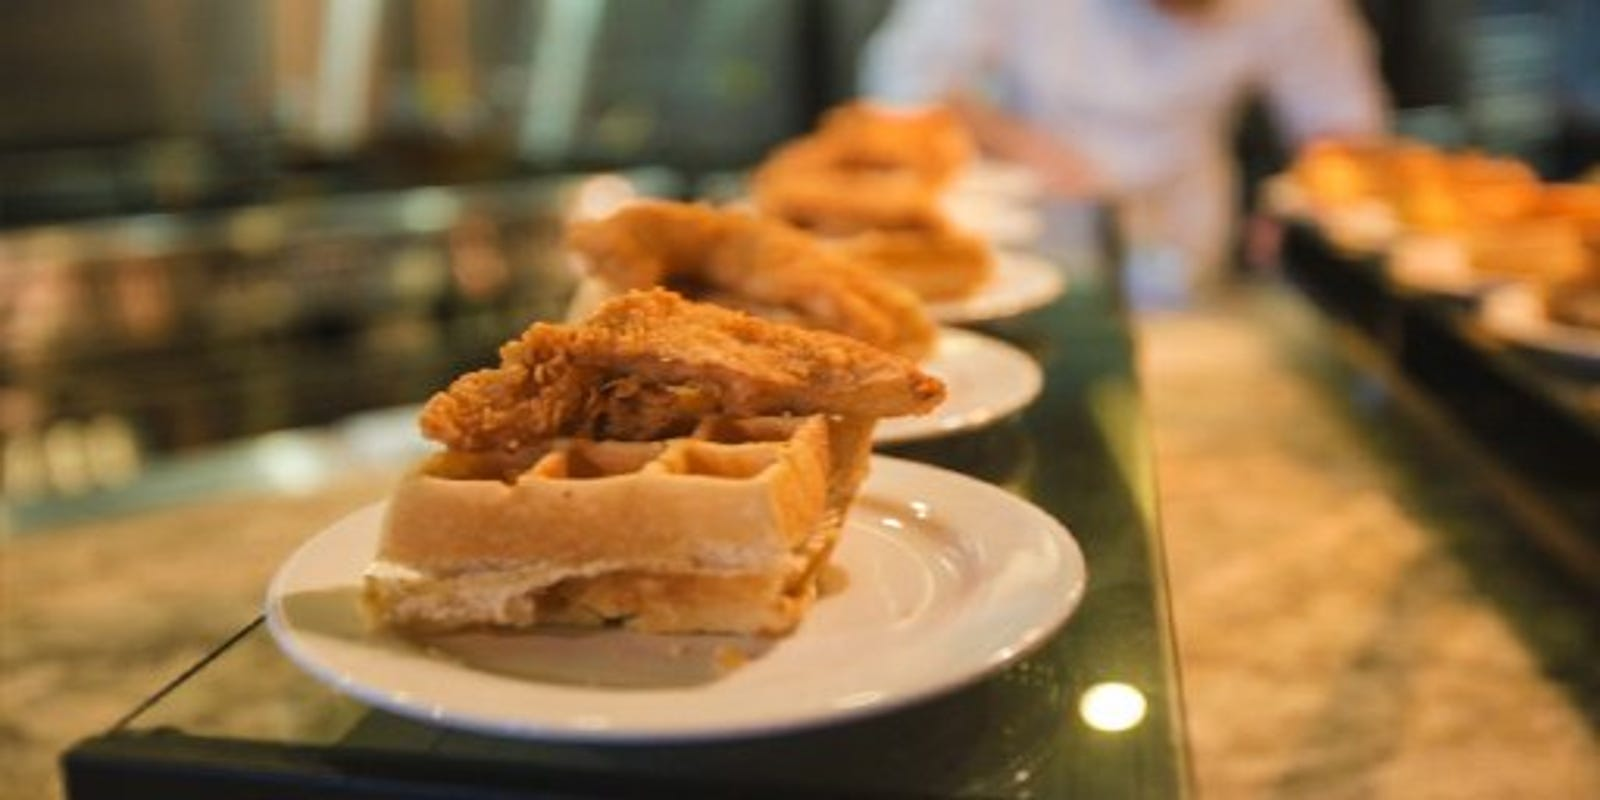 chick fil a chicken and waffles 2020